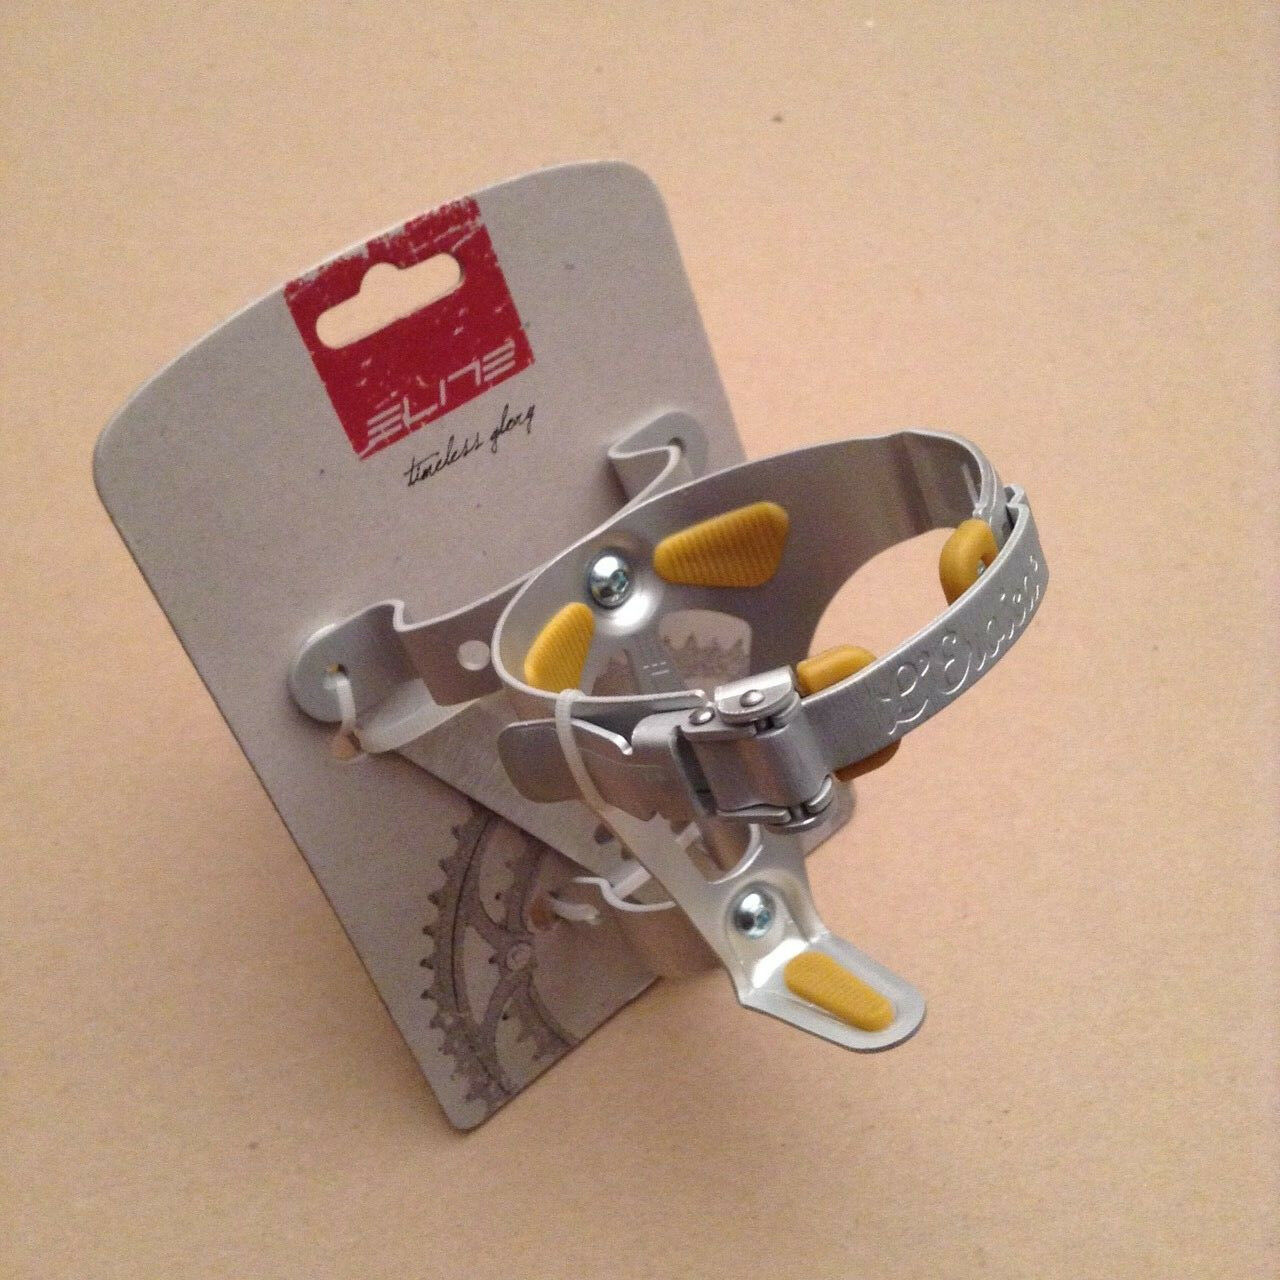 L/'Eroica. NOS  Roto cycling water bottle cage cromed Vintage